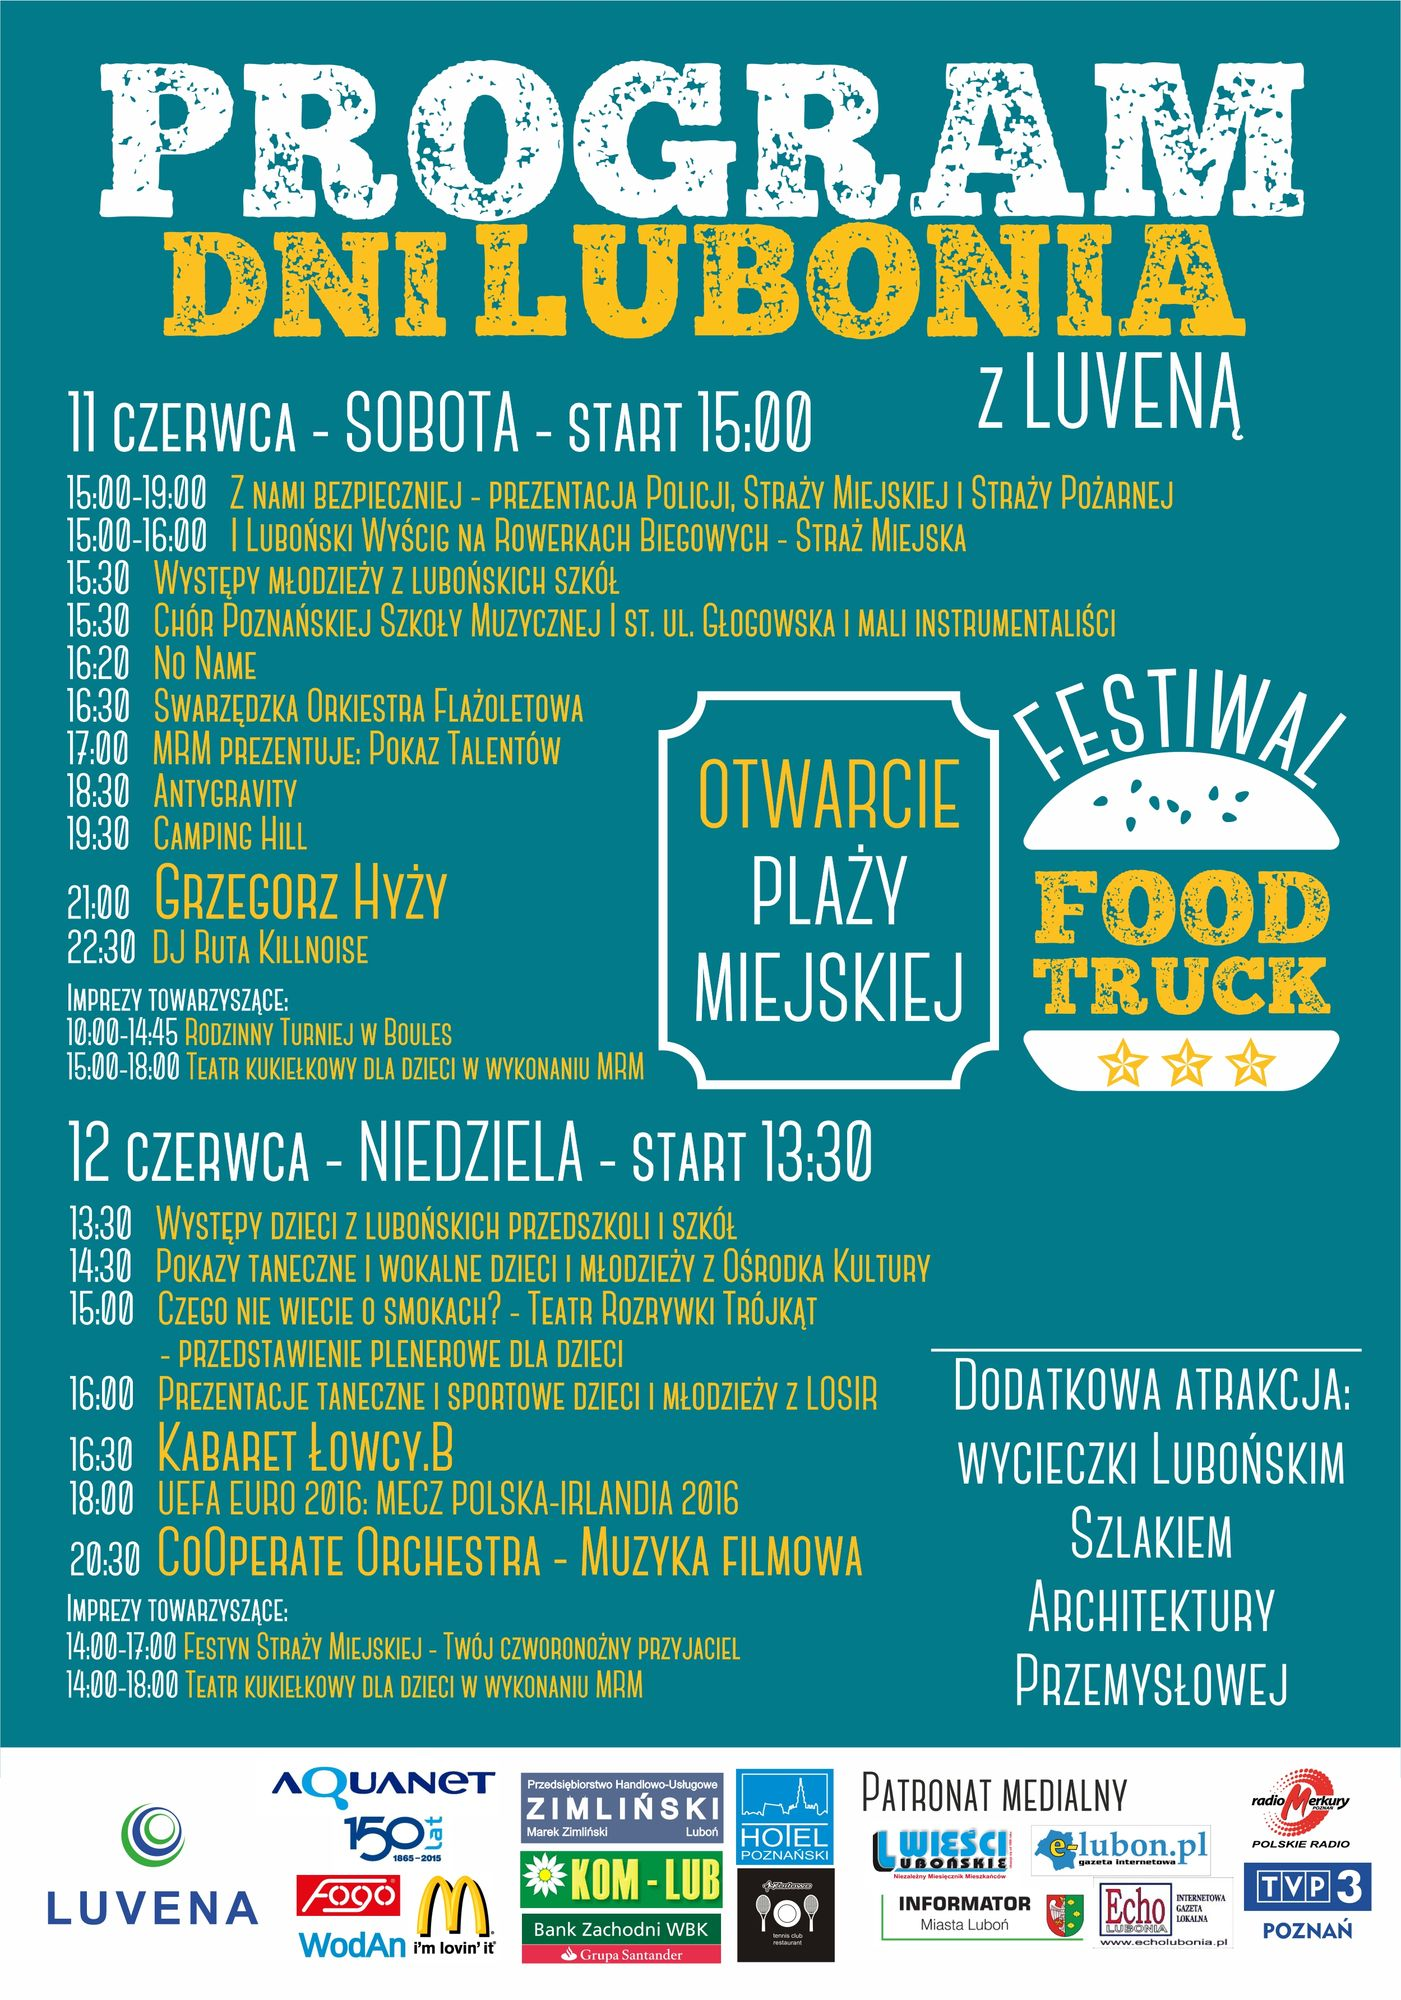 Dni Lubonia 2016 - program